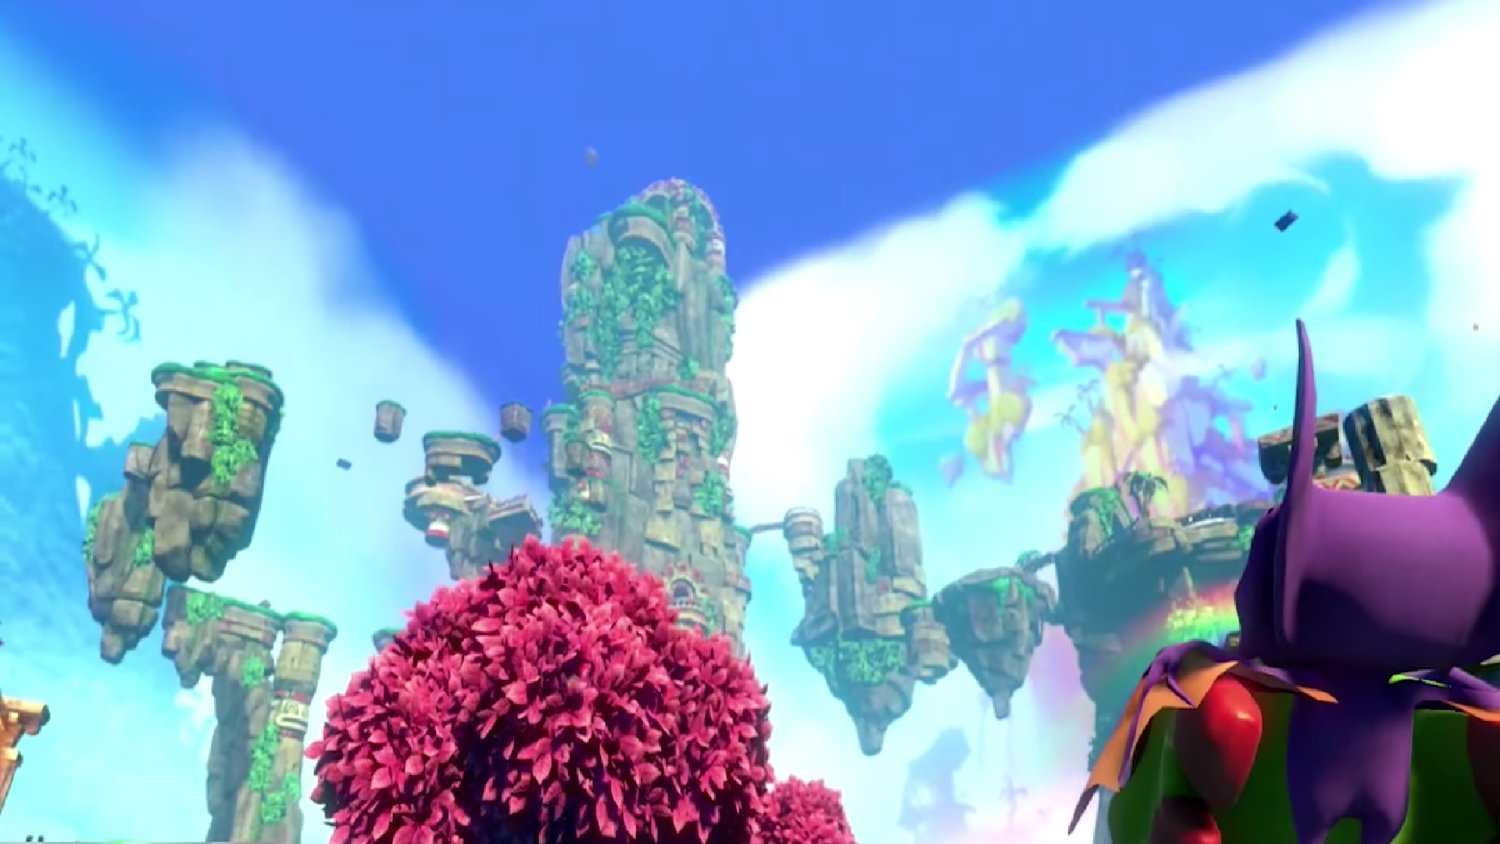 Spend 22 Minutes in the Gorgeous World of YOOKA LAYLEE